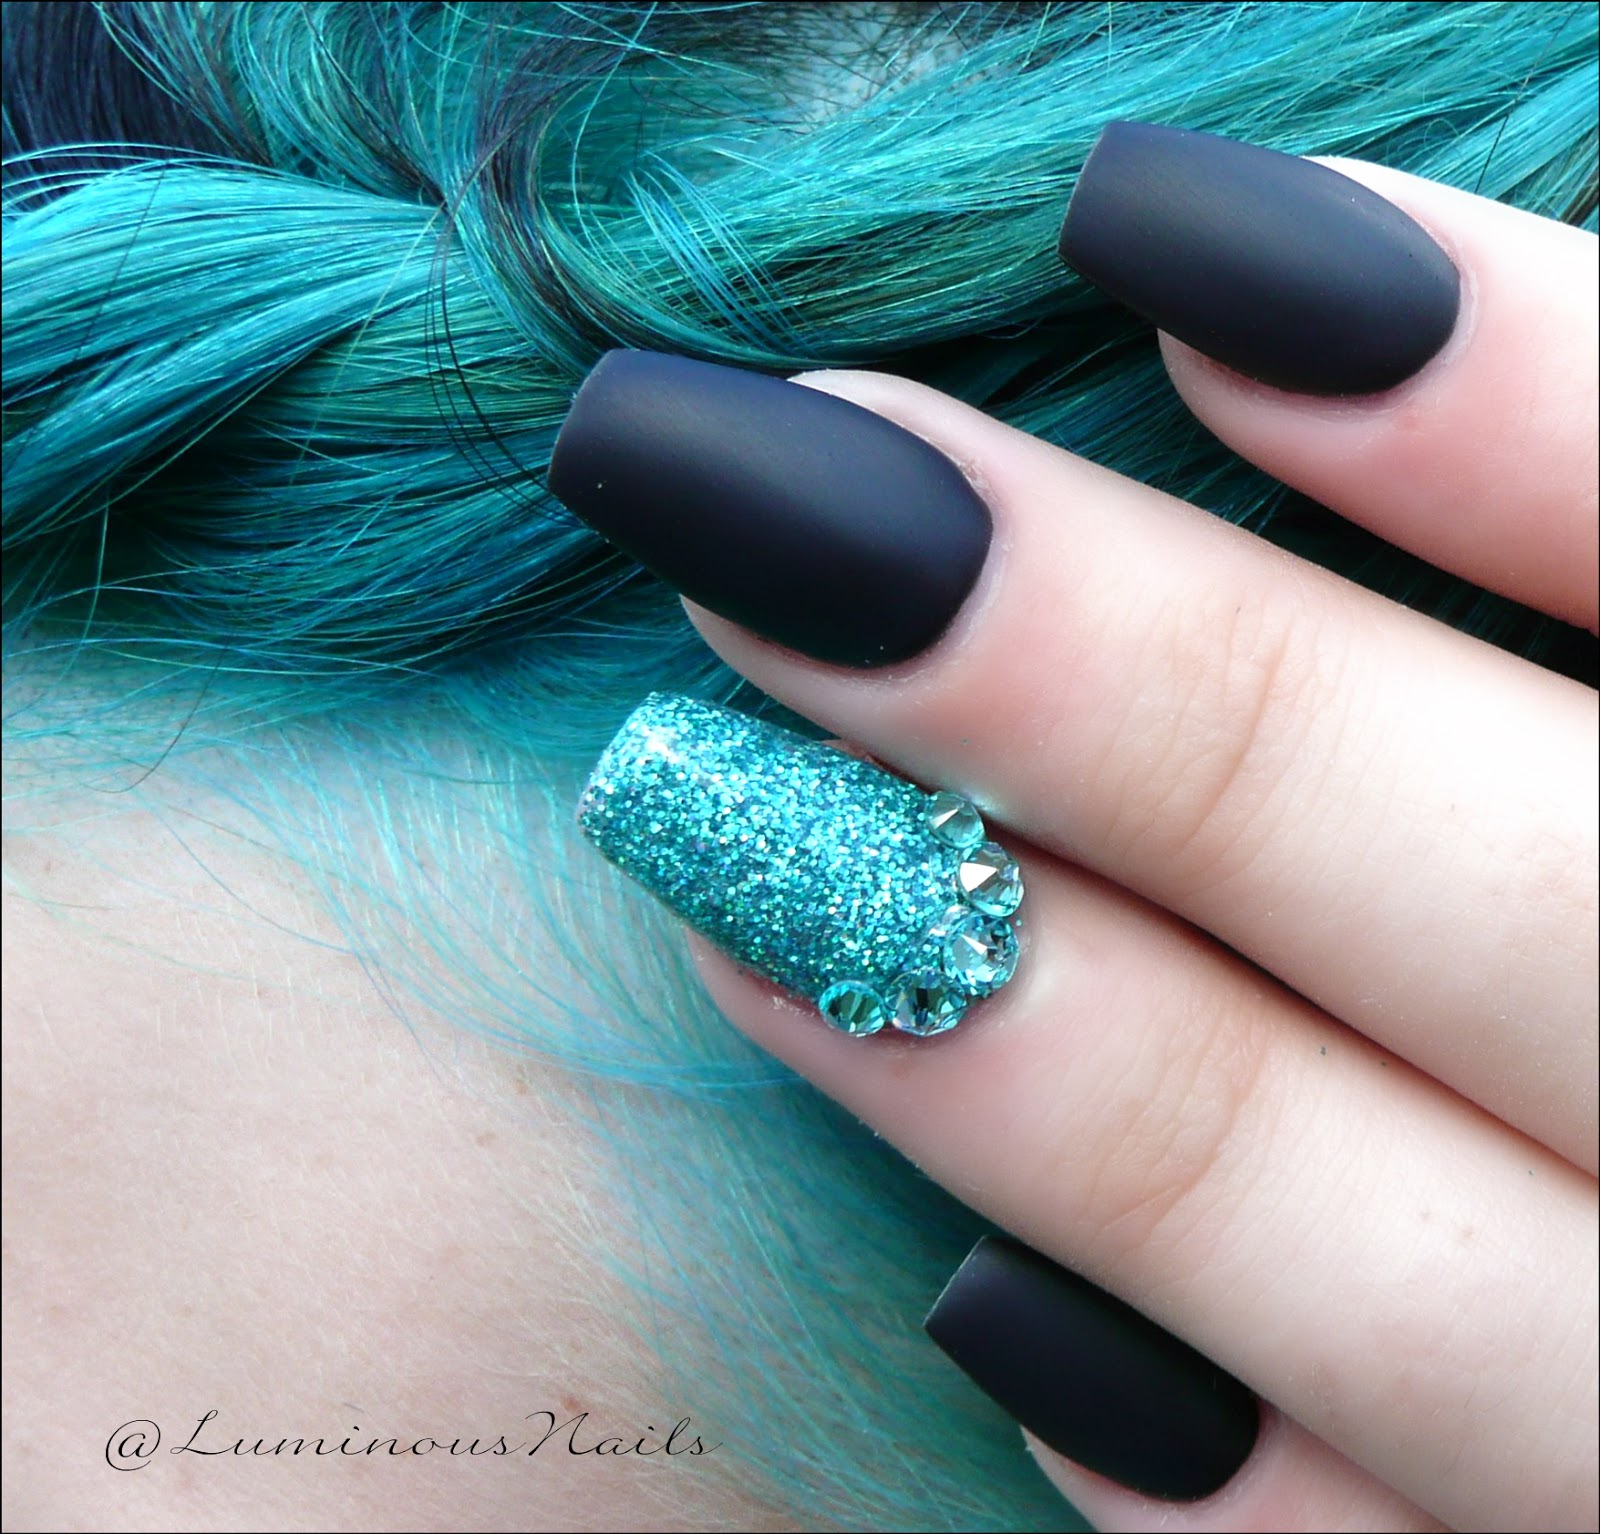 Luminous Nails: Matte Black & Glittery Turquoise.... To match hair ...